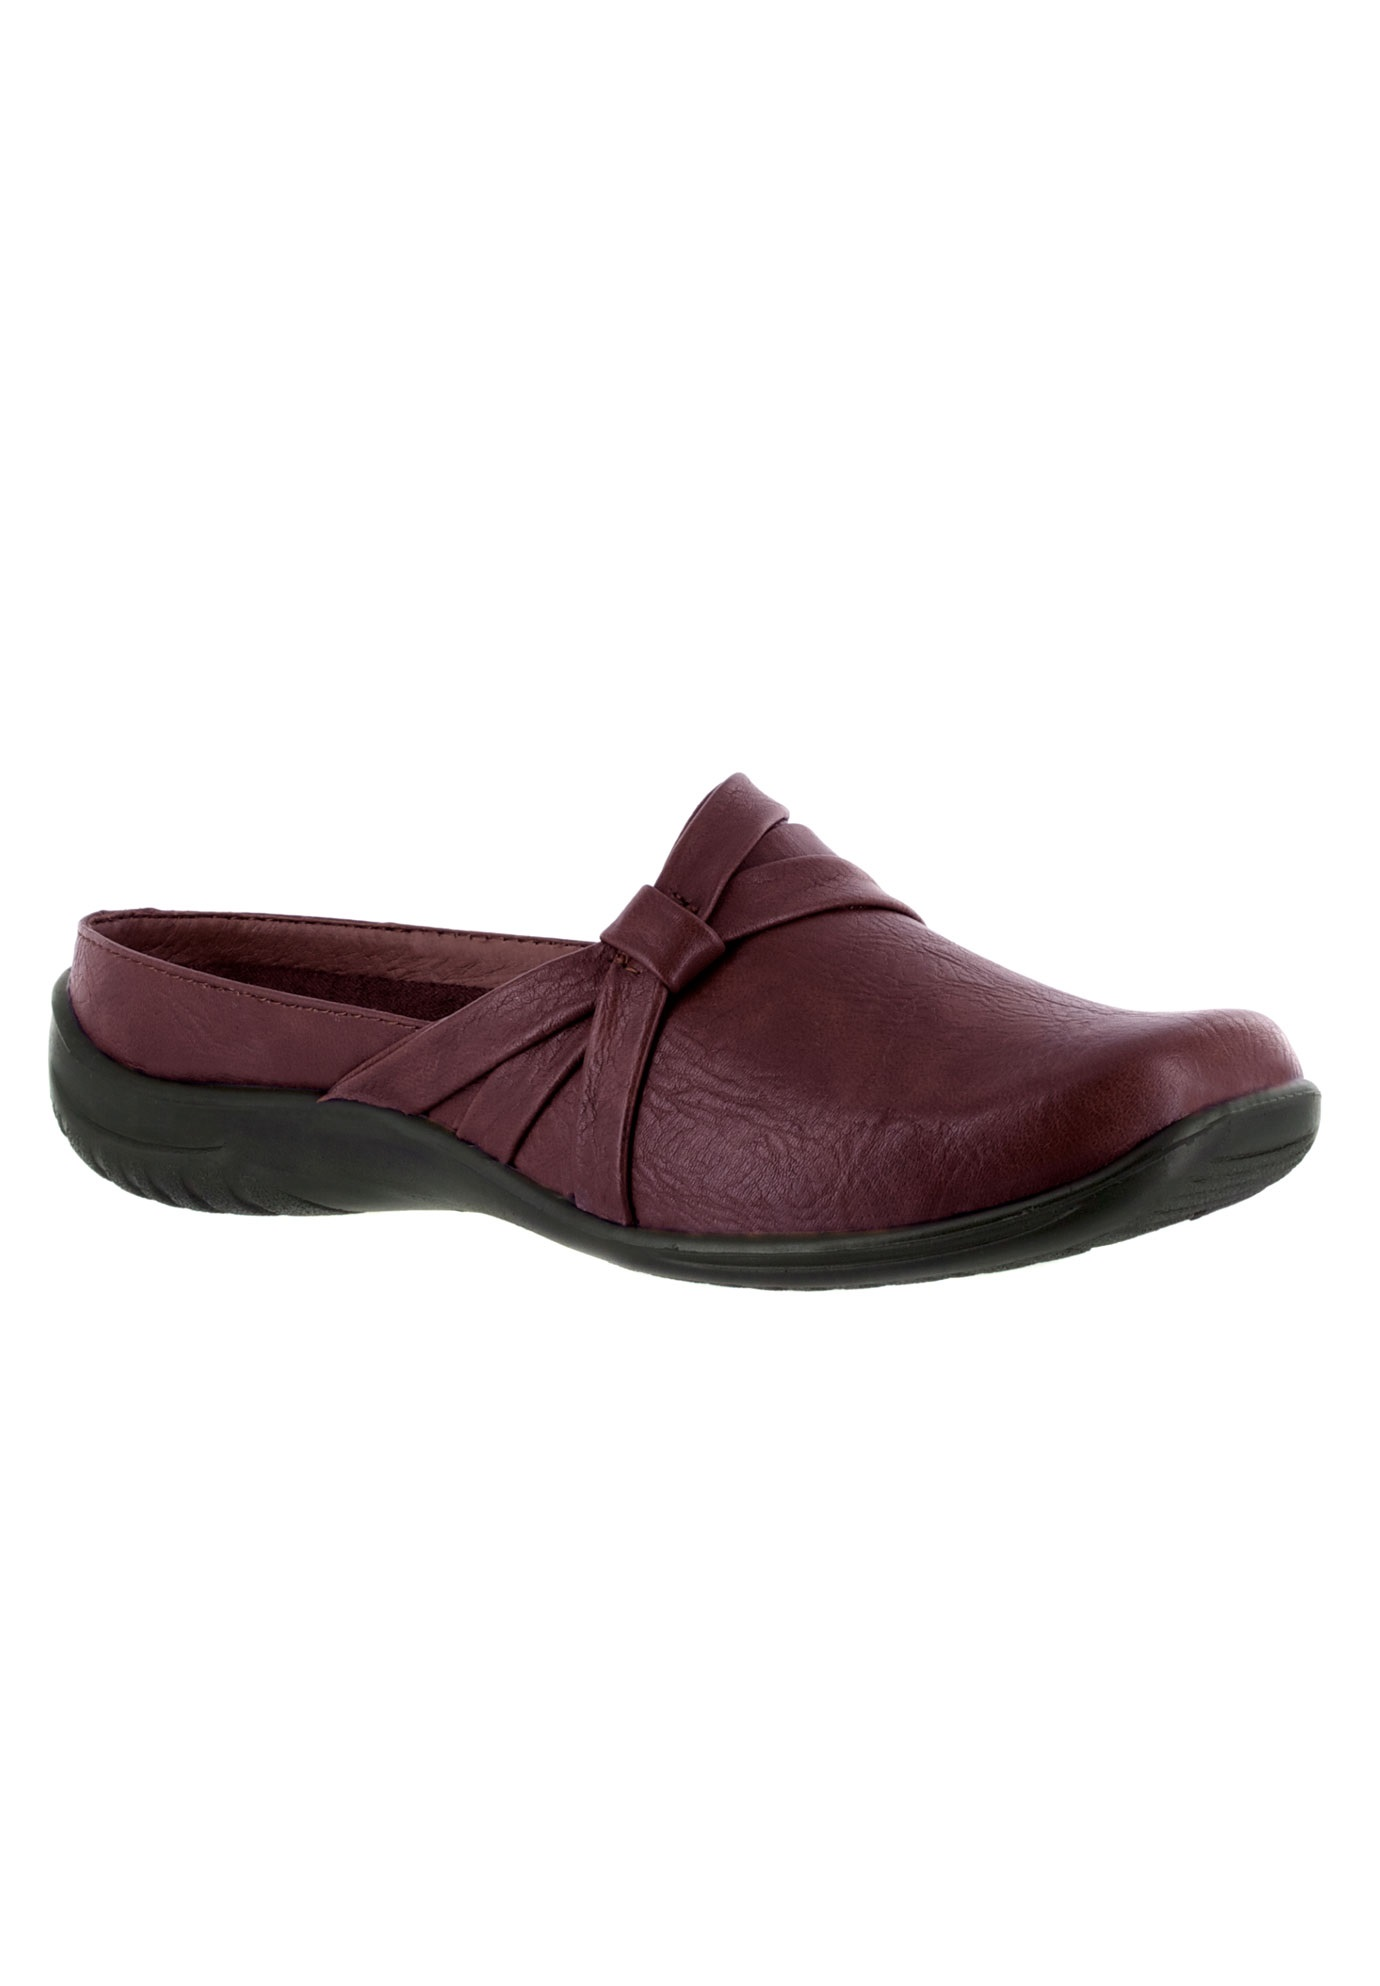 Ease Clogs by Easy Street®,